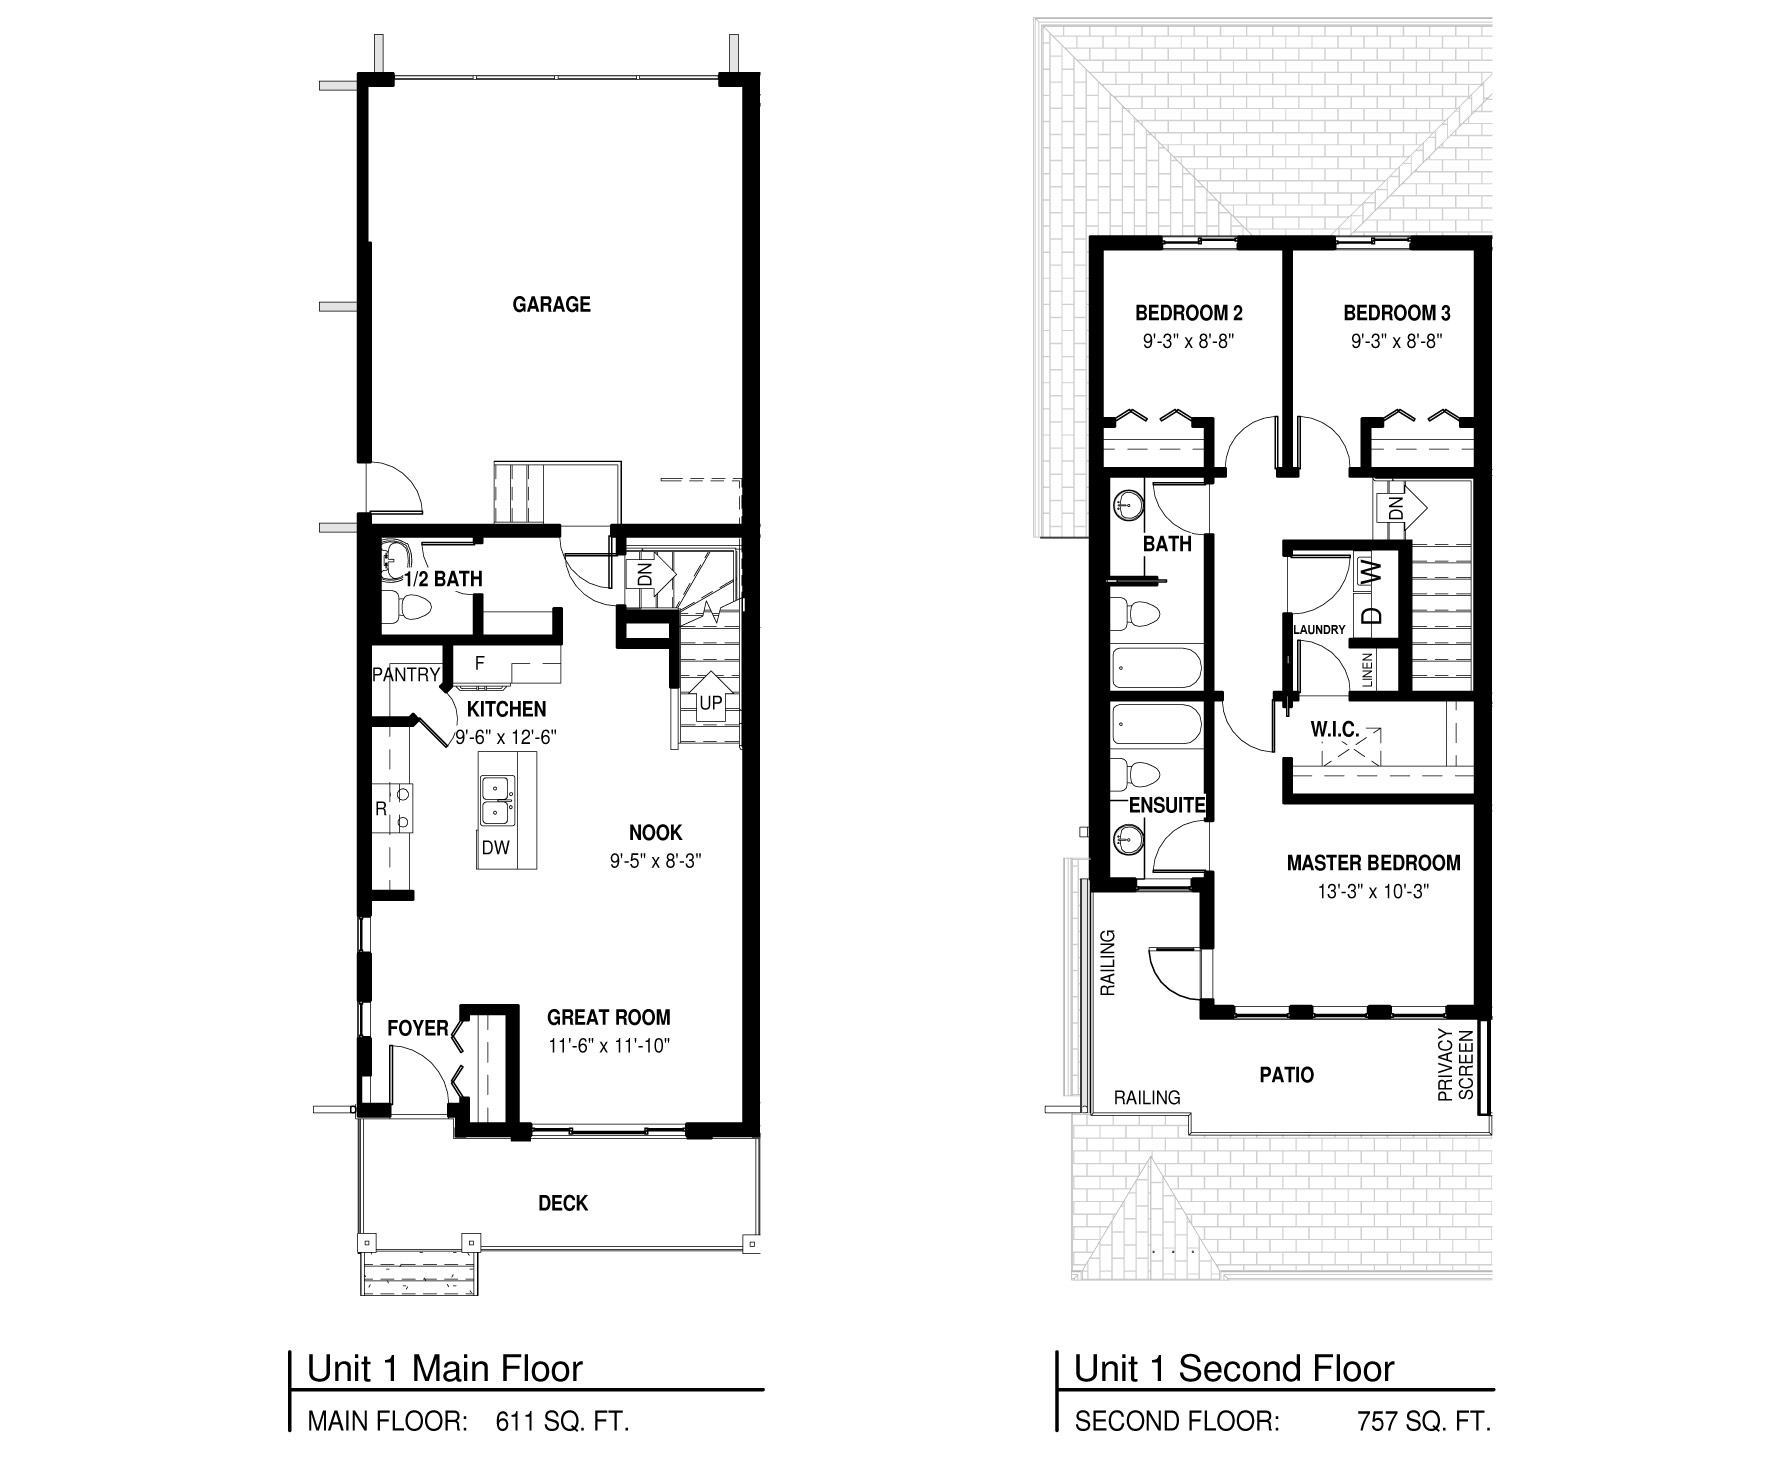 Vue 1 Floorplan